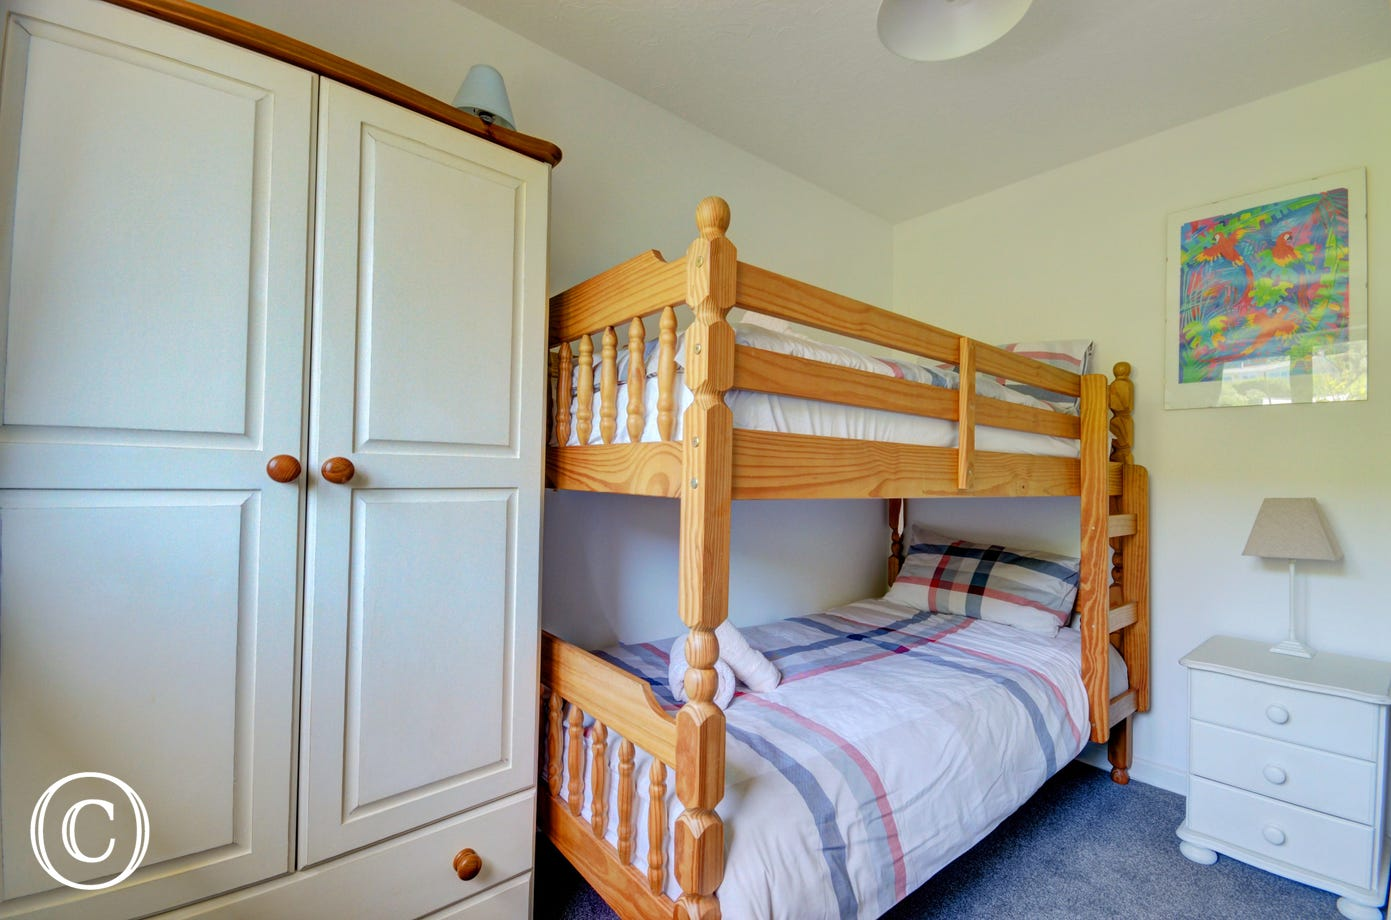 The forth bedroom has bunks which will be a favourite with the children